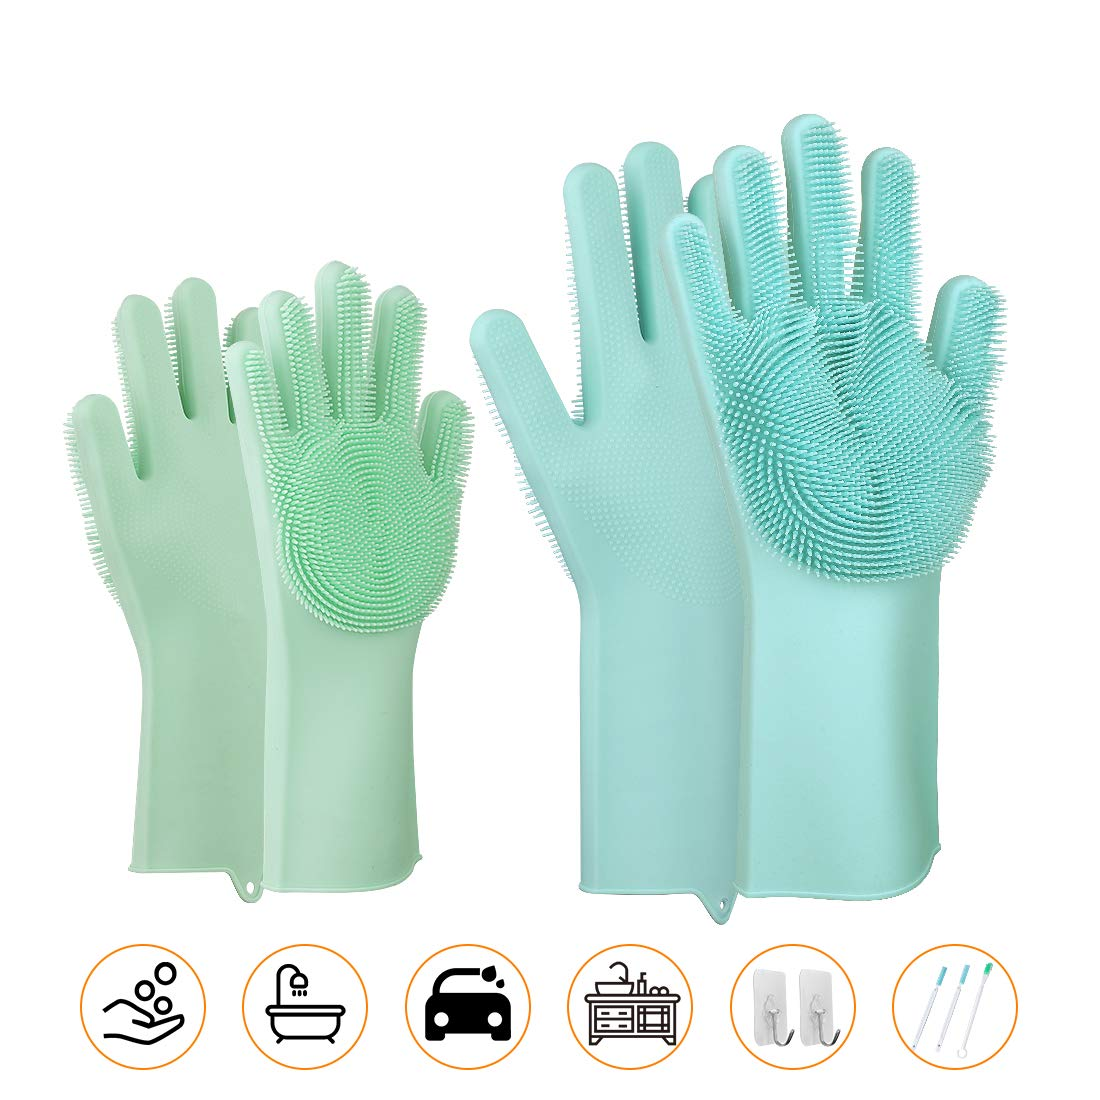 Magic SakSak Scrubbing Gloves - 2Size(Adult+Kid) Scrub Gloves - Reusable Silicone Cleaning Gloves Dishwashing Scrubber with Bristles For Washing Kitchen, Bathroom, Car and More